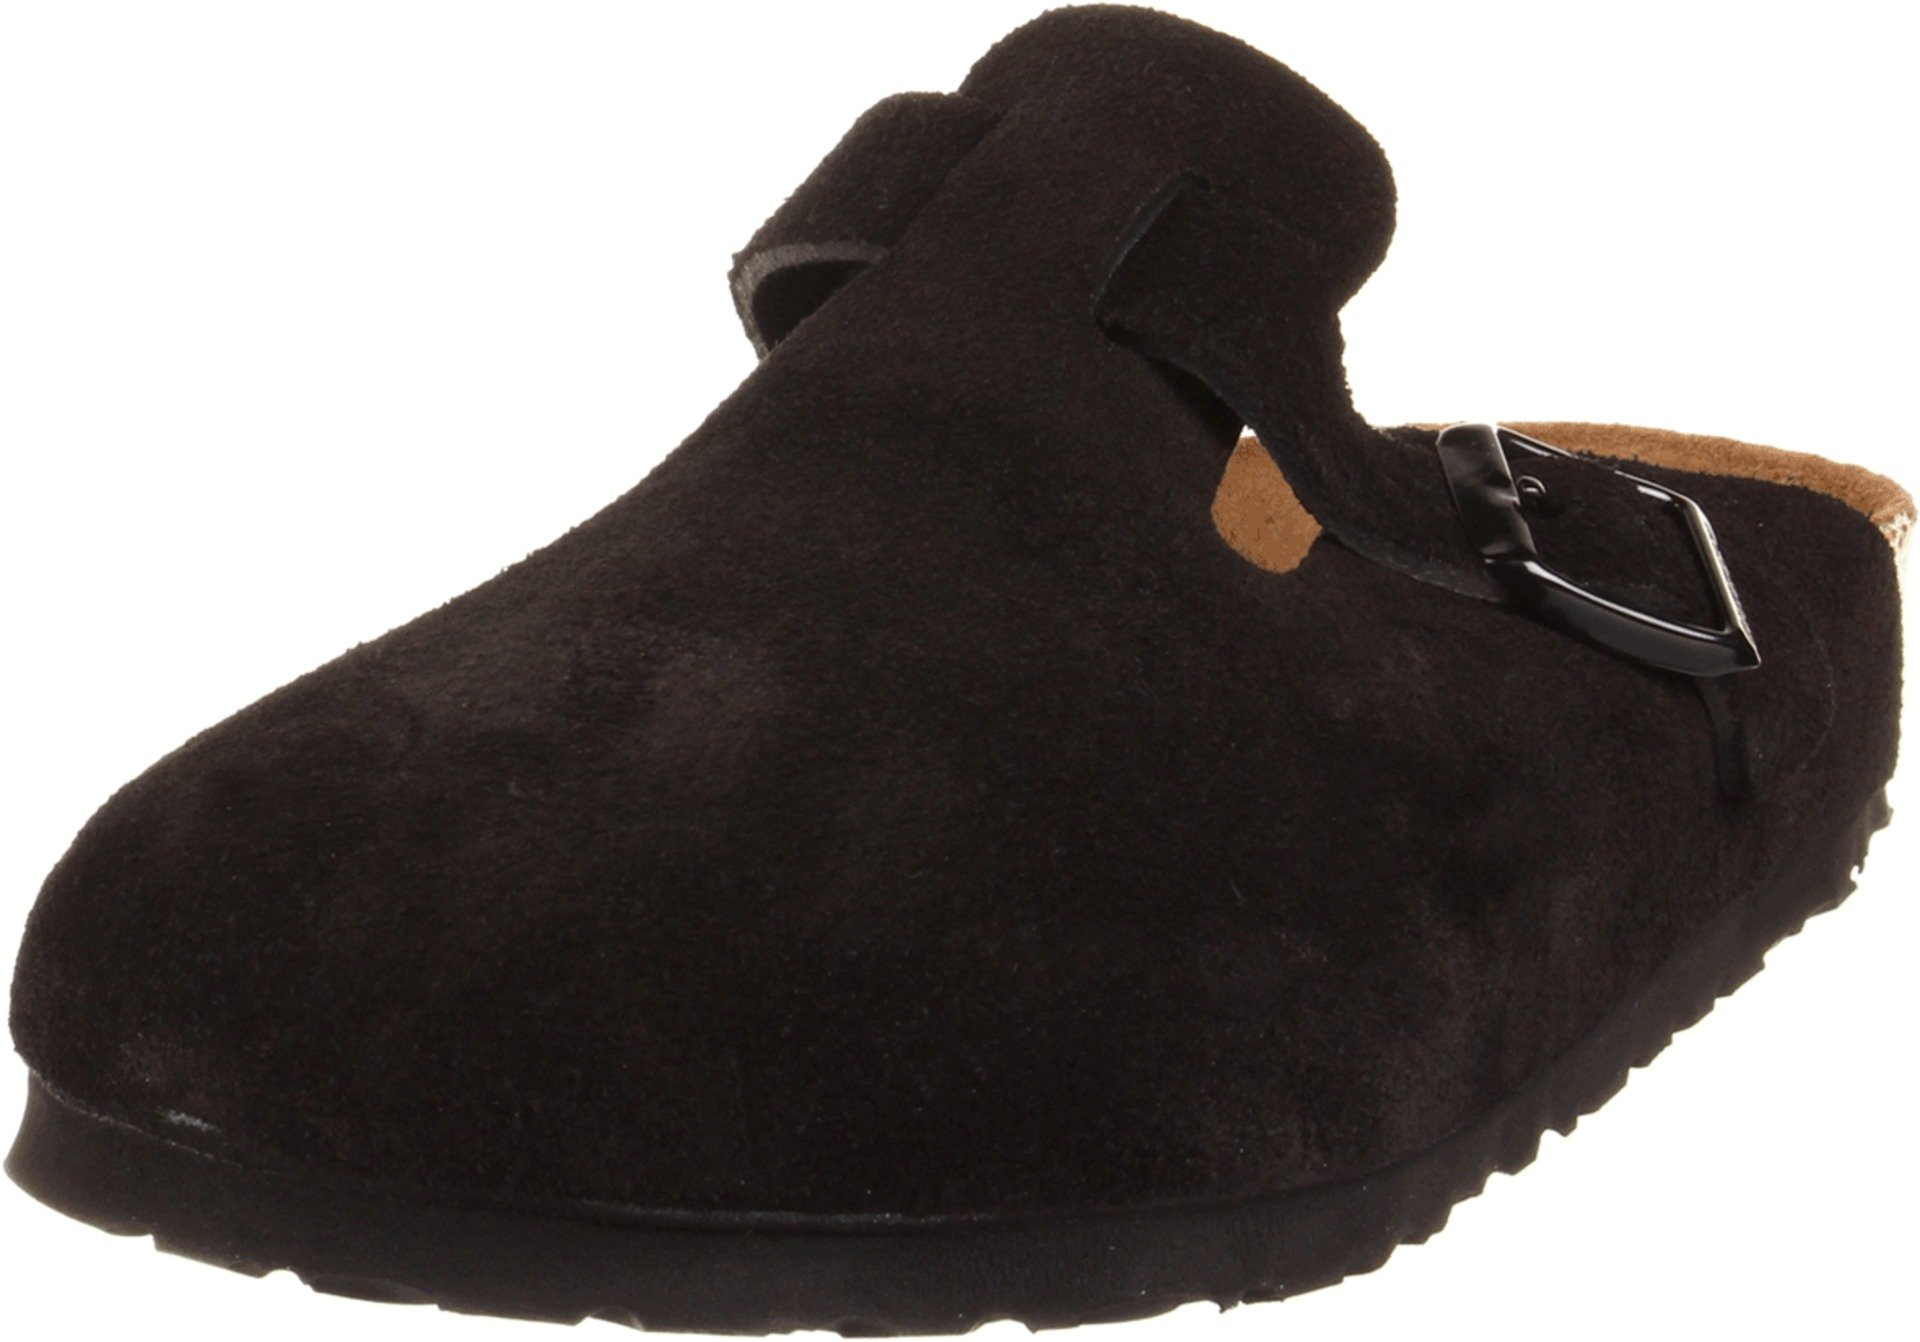 Birkenstock Boston Soft Footbed (Unisex), Black Suede, 36 M EU by Birkenstock